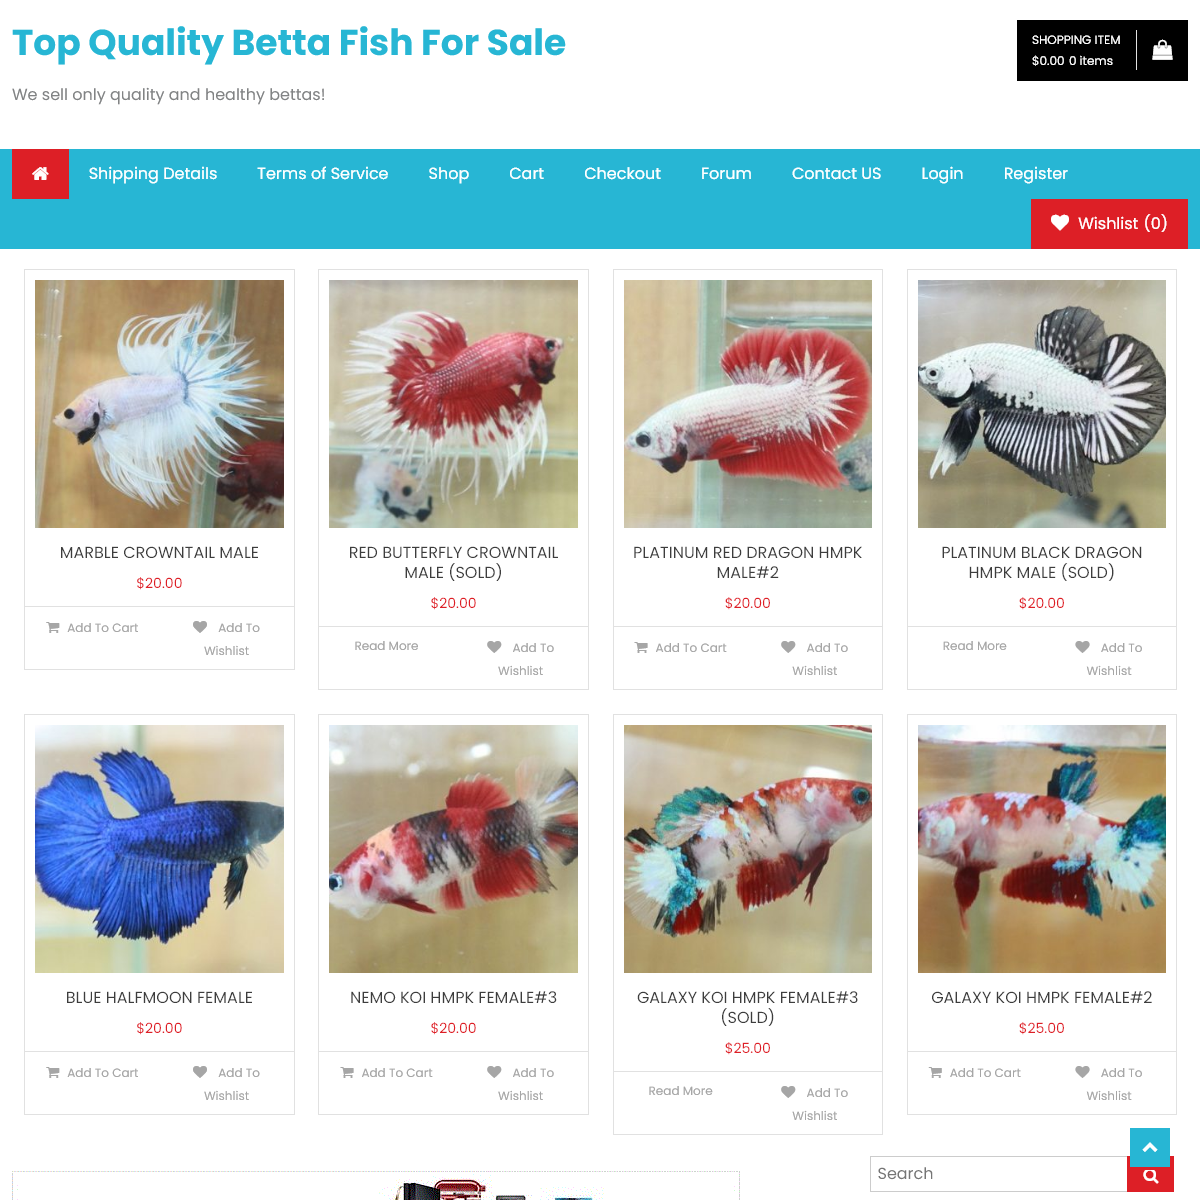 Welcome to Betta Fish Top - Top Quality Betta Fish For Sale